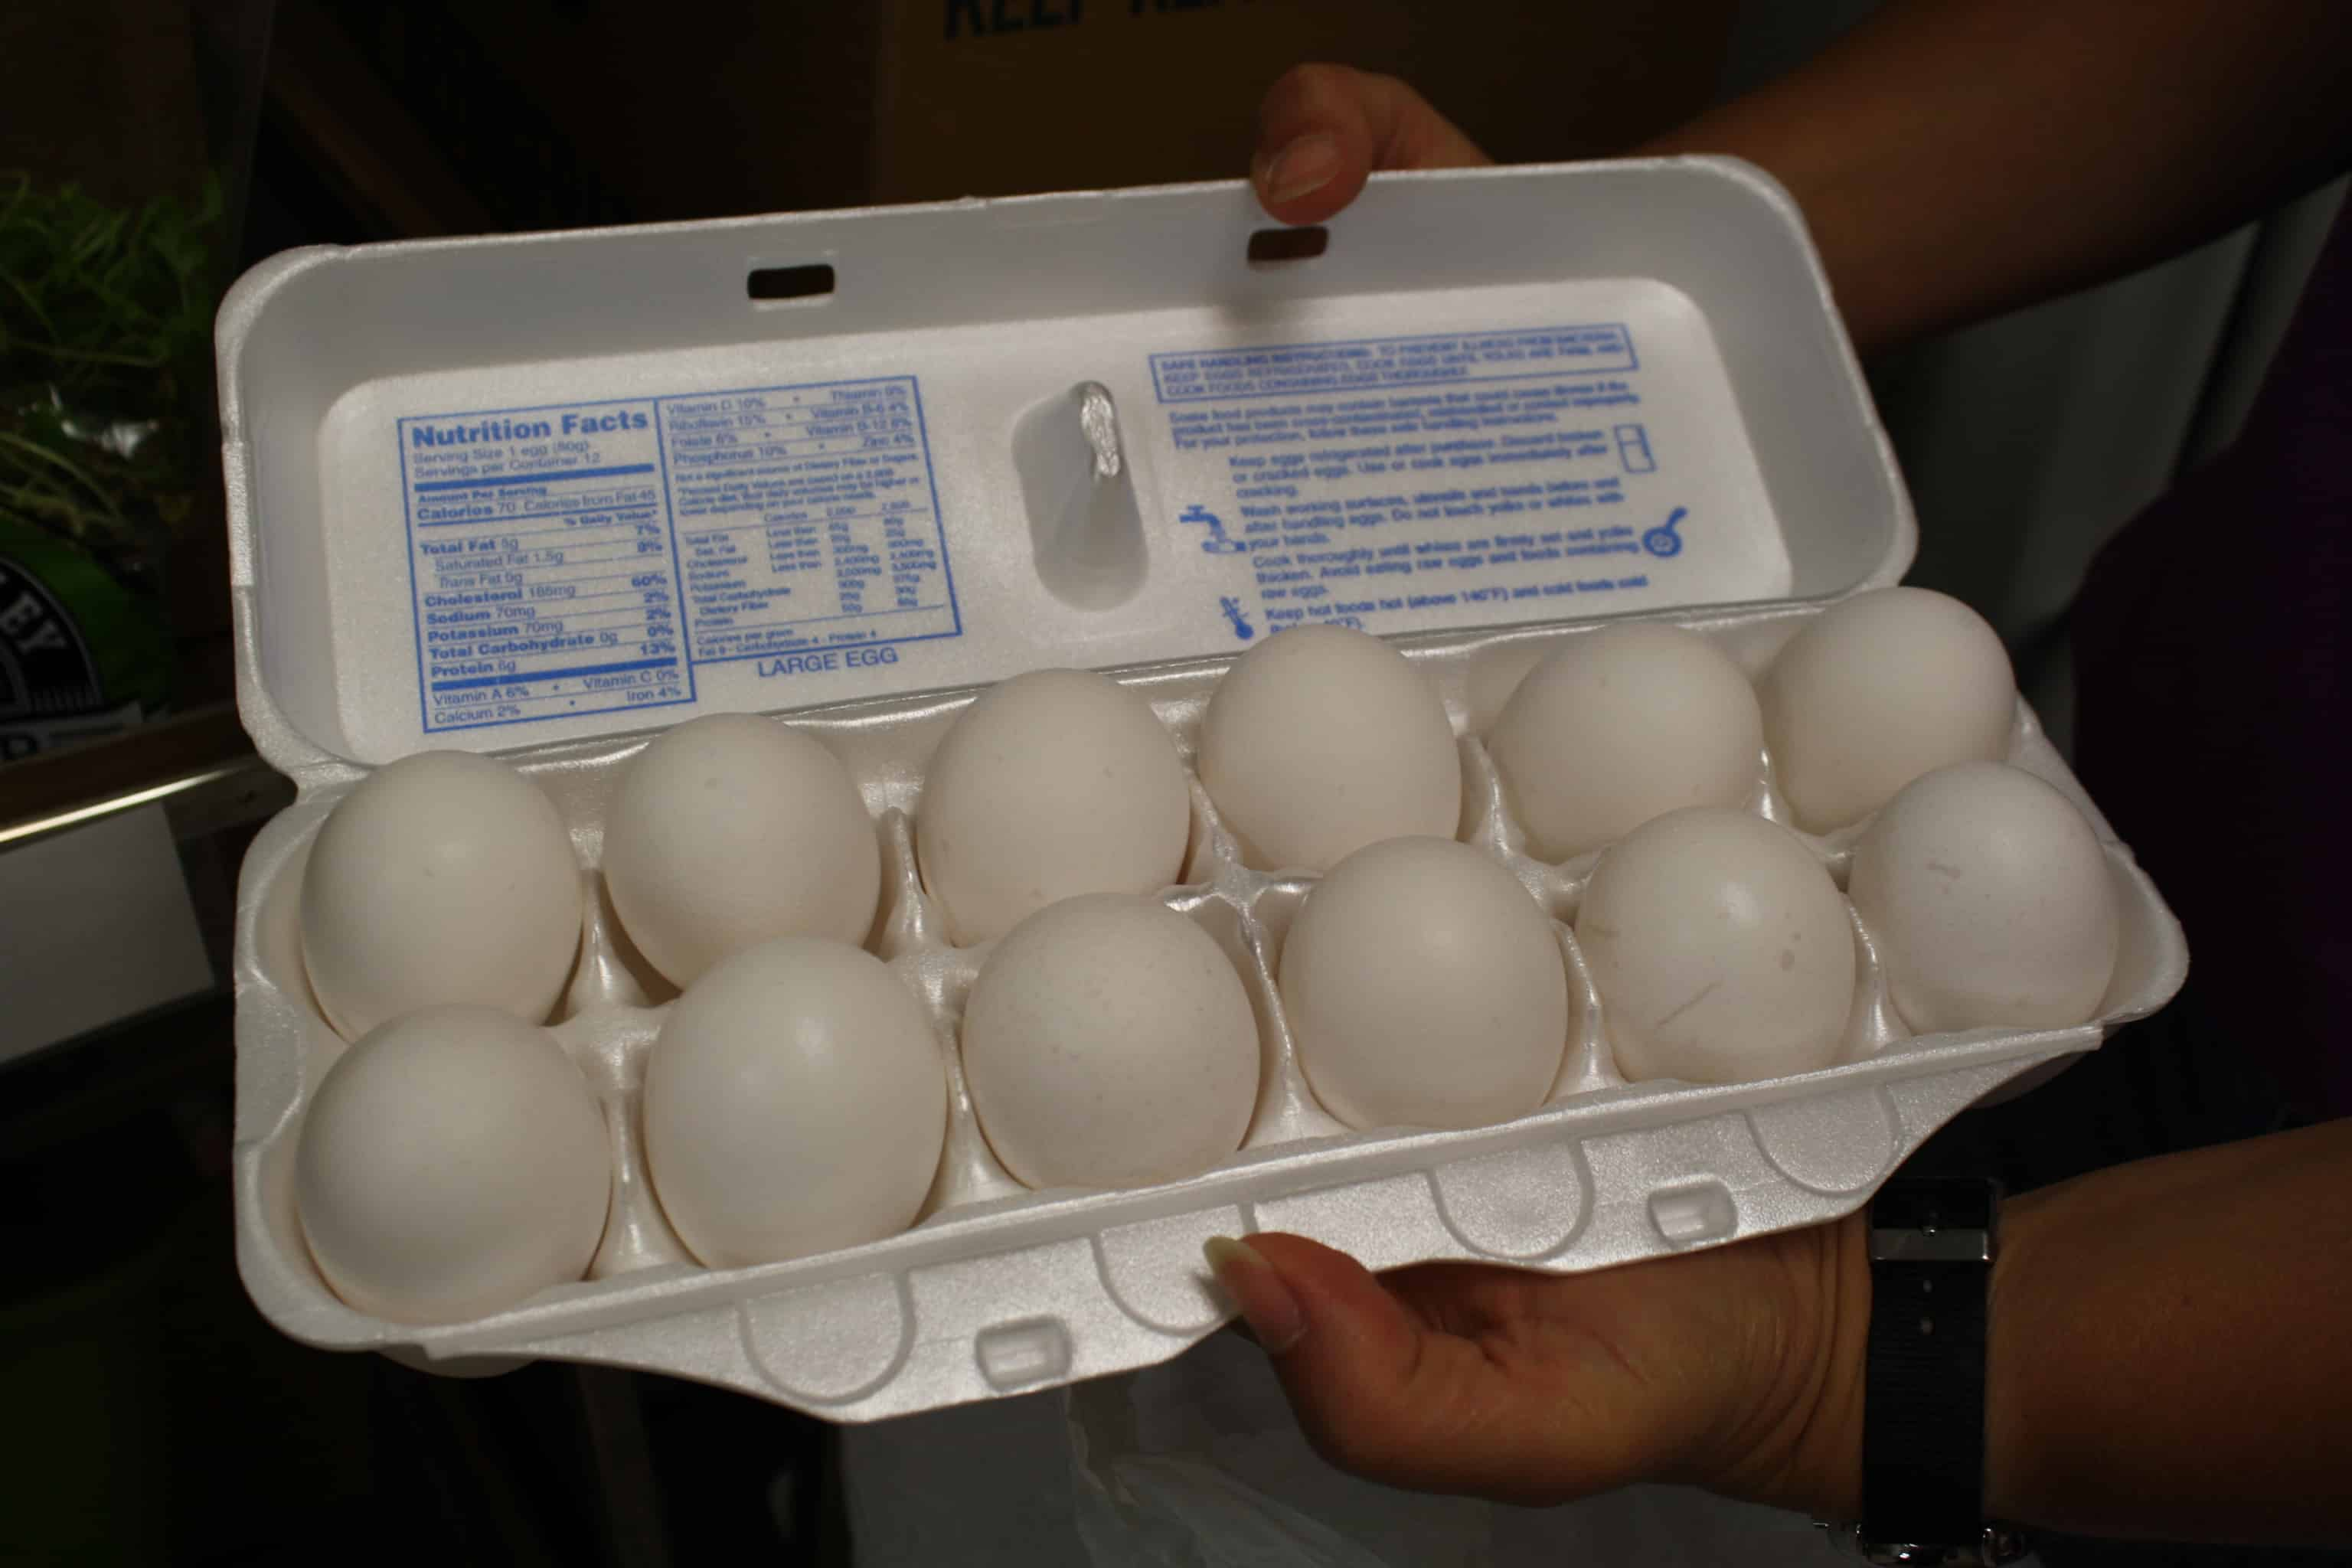 You will receive a dozen eggs, margarine and cheese each time you visit the pantry.